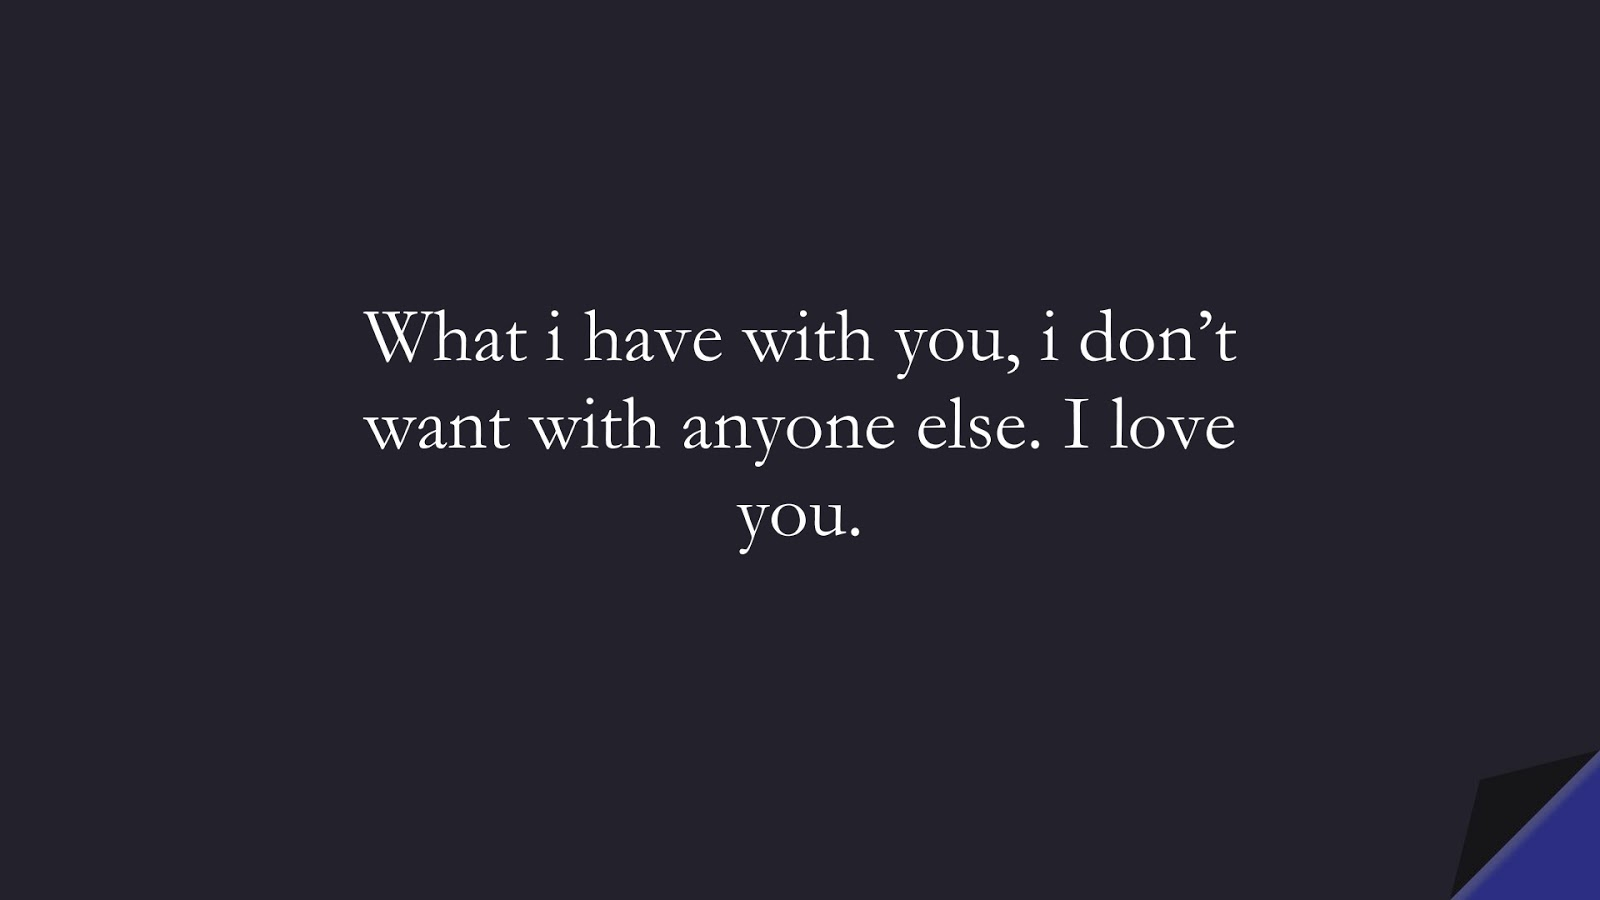 What i have with you, i don't want with anyone else. I love you.FALSE